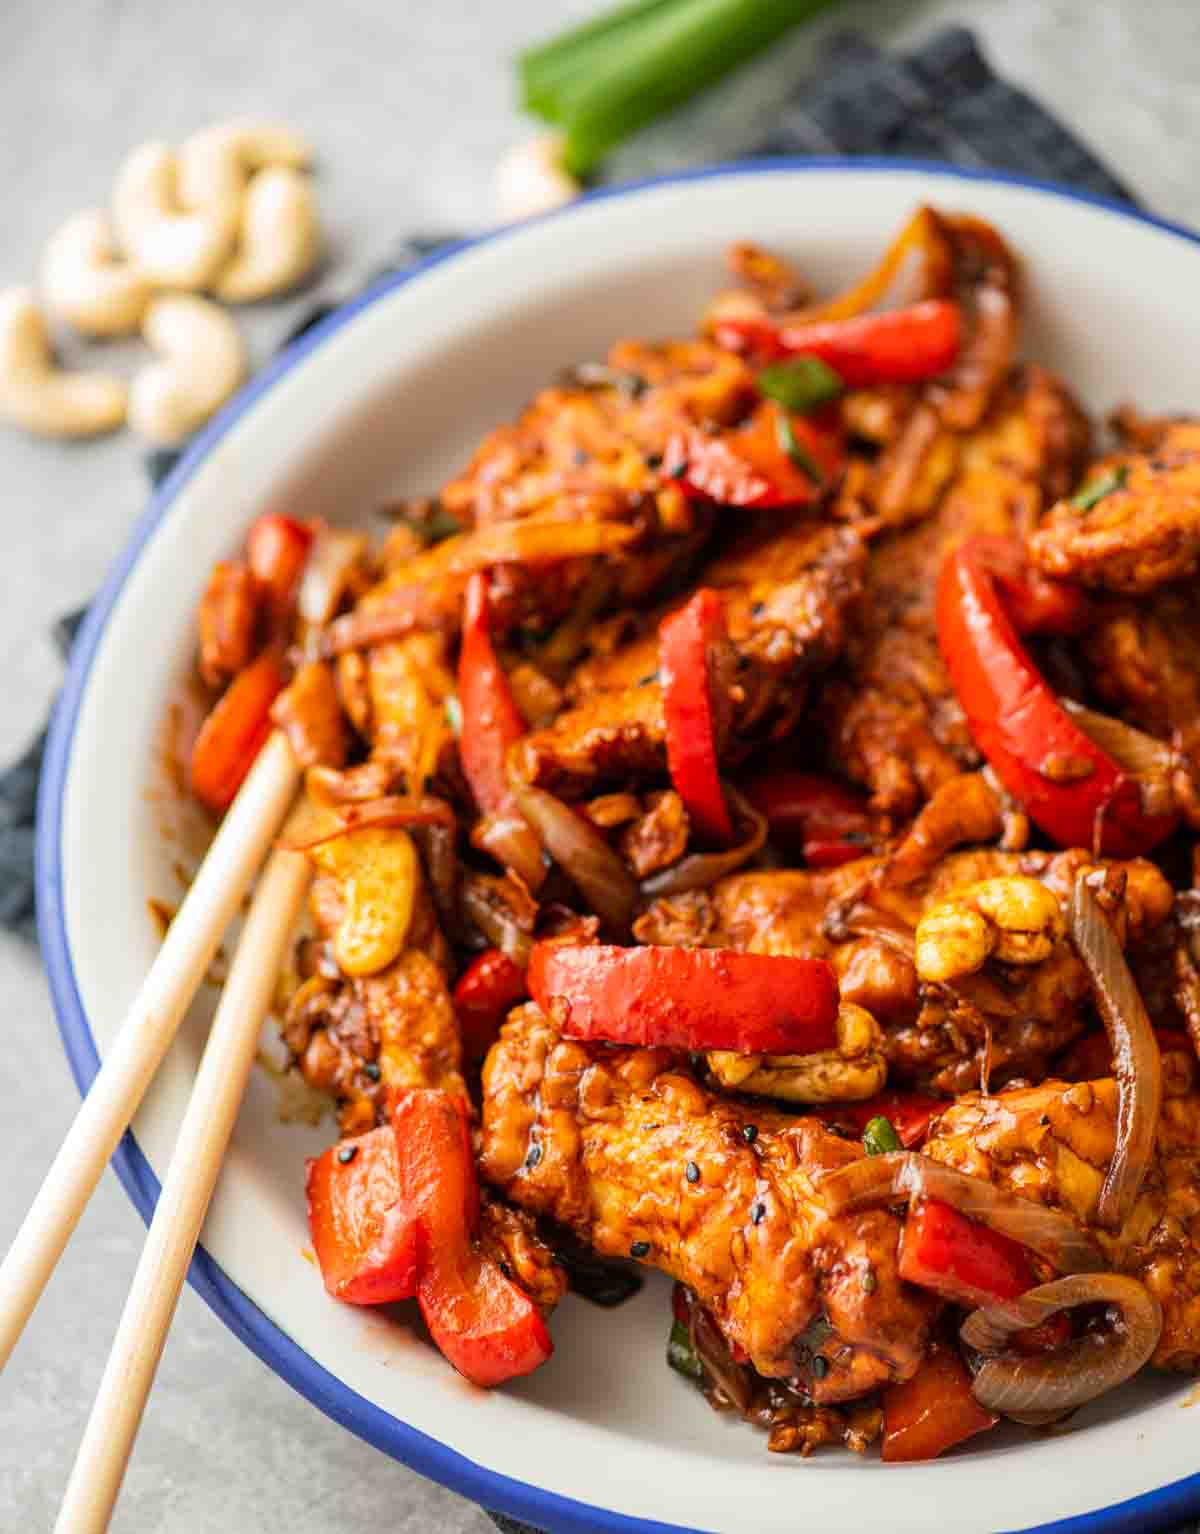 chicken with bell pepper served on a white plate with chopsticks